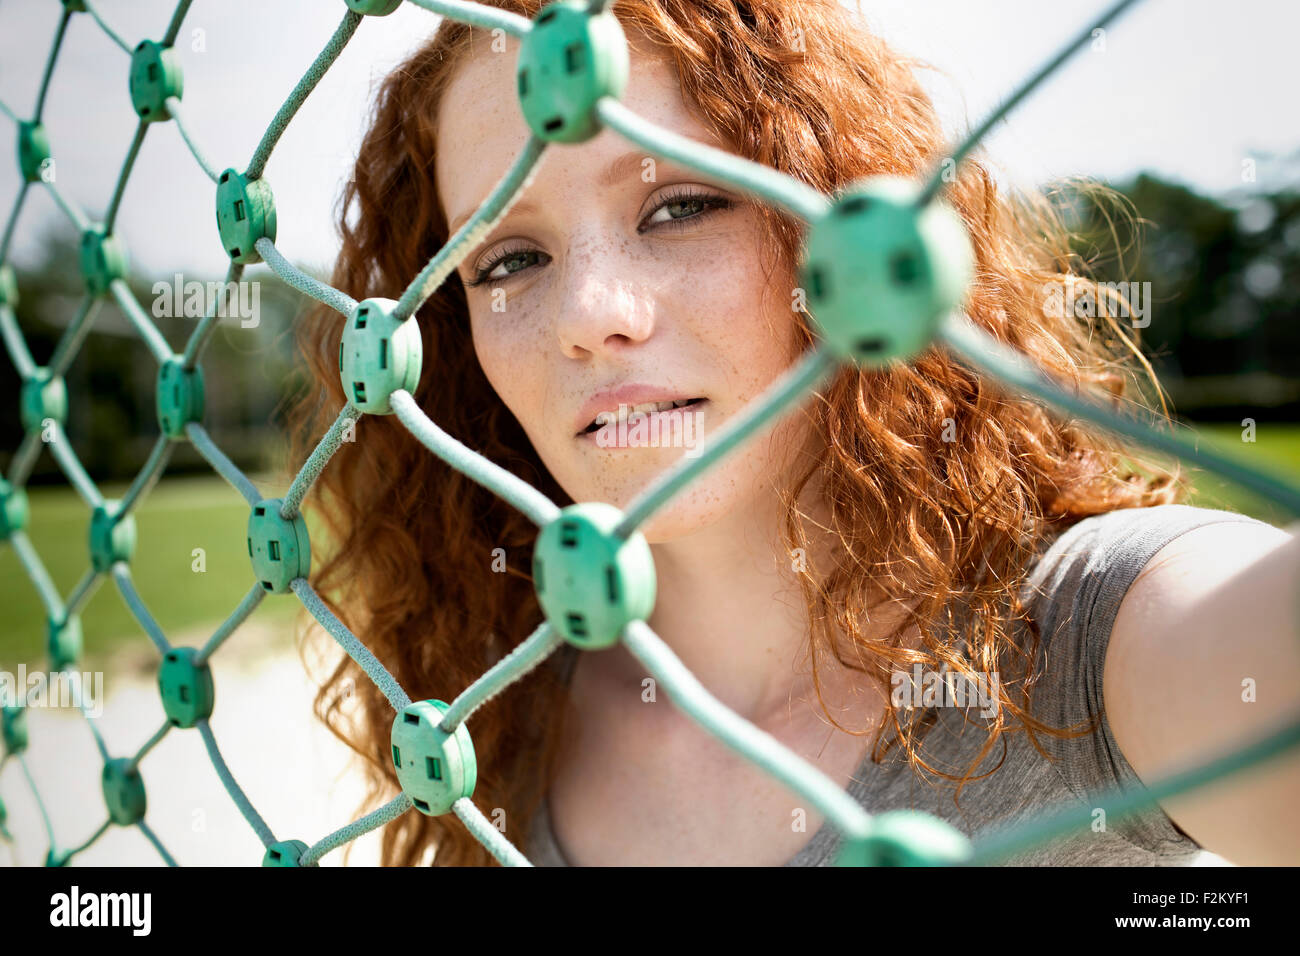 Portrait of redheaded teenage girl looking through net - Stock Image